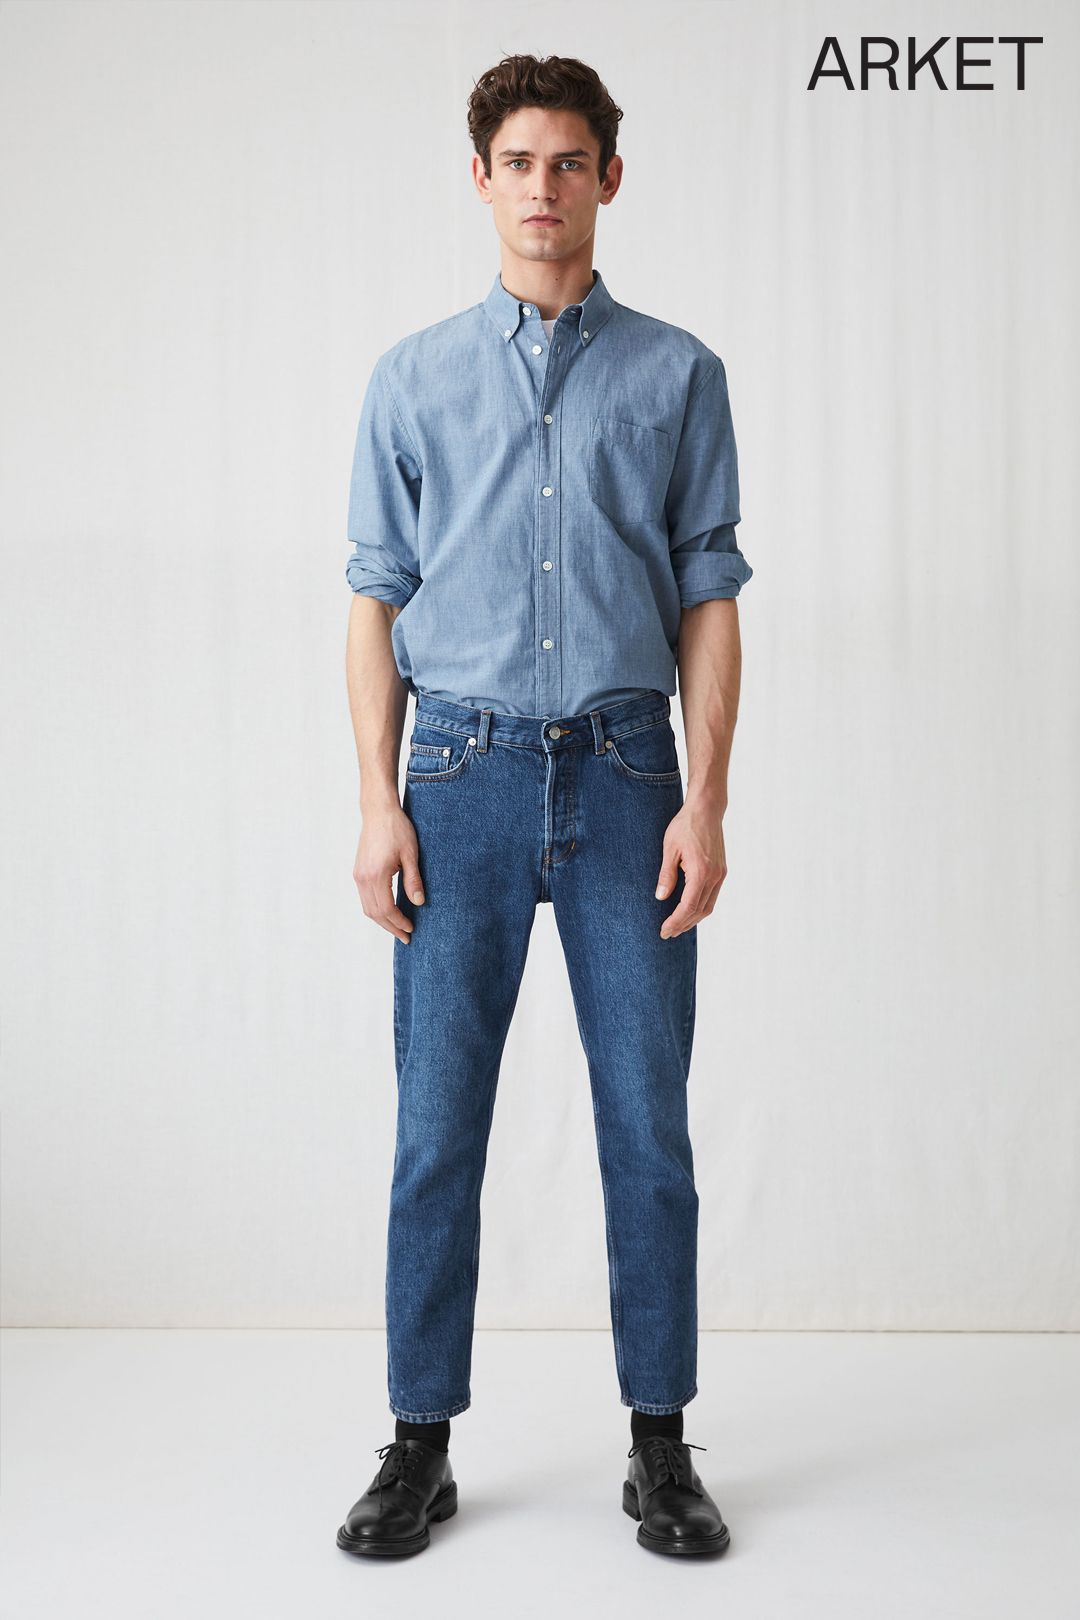 Regular Cropped Jeans Blue Jeans Blue Denim Shirt Outfit